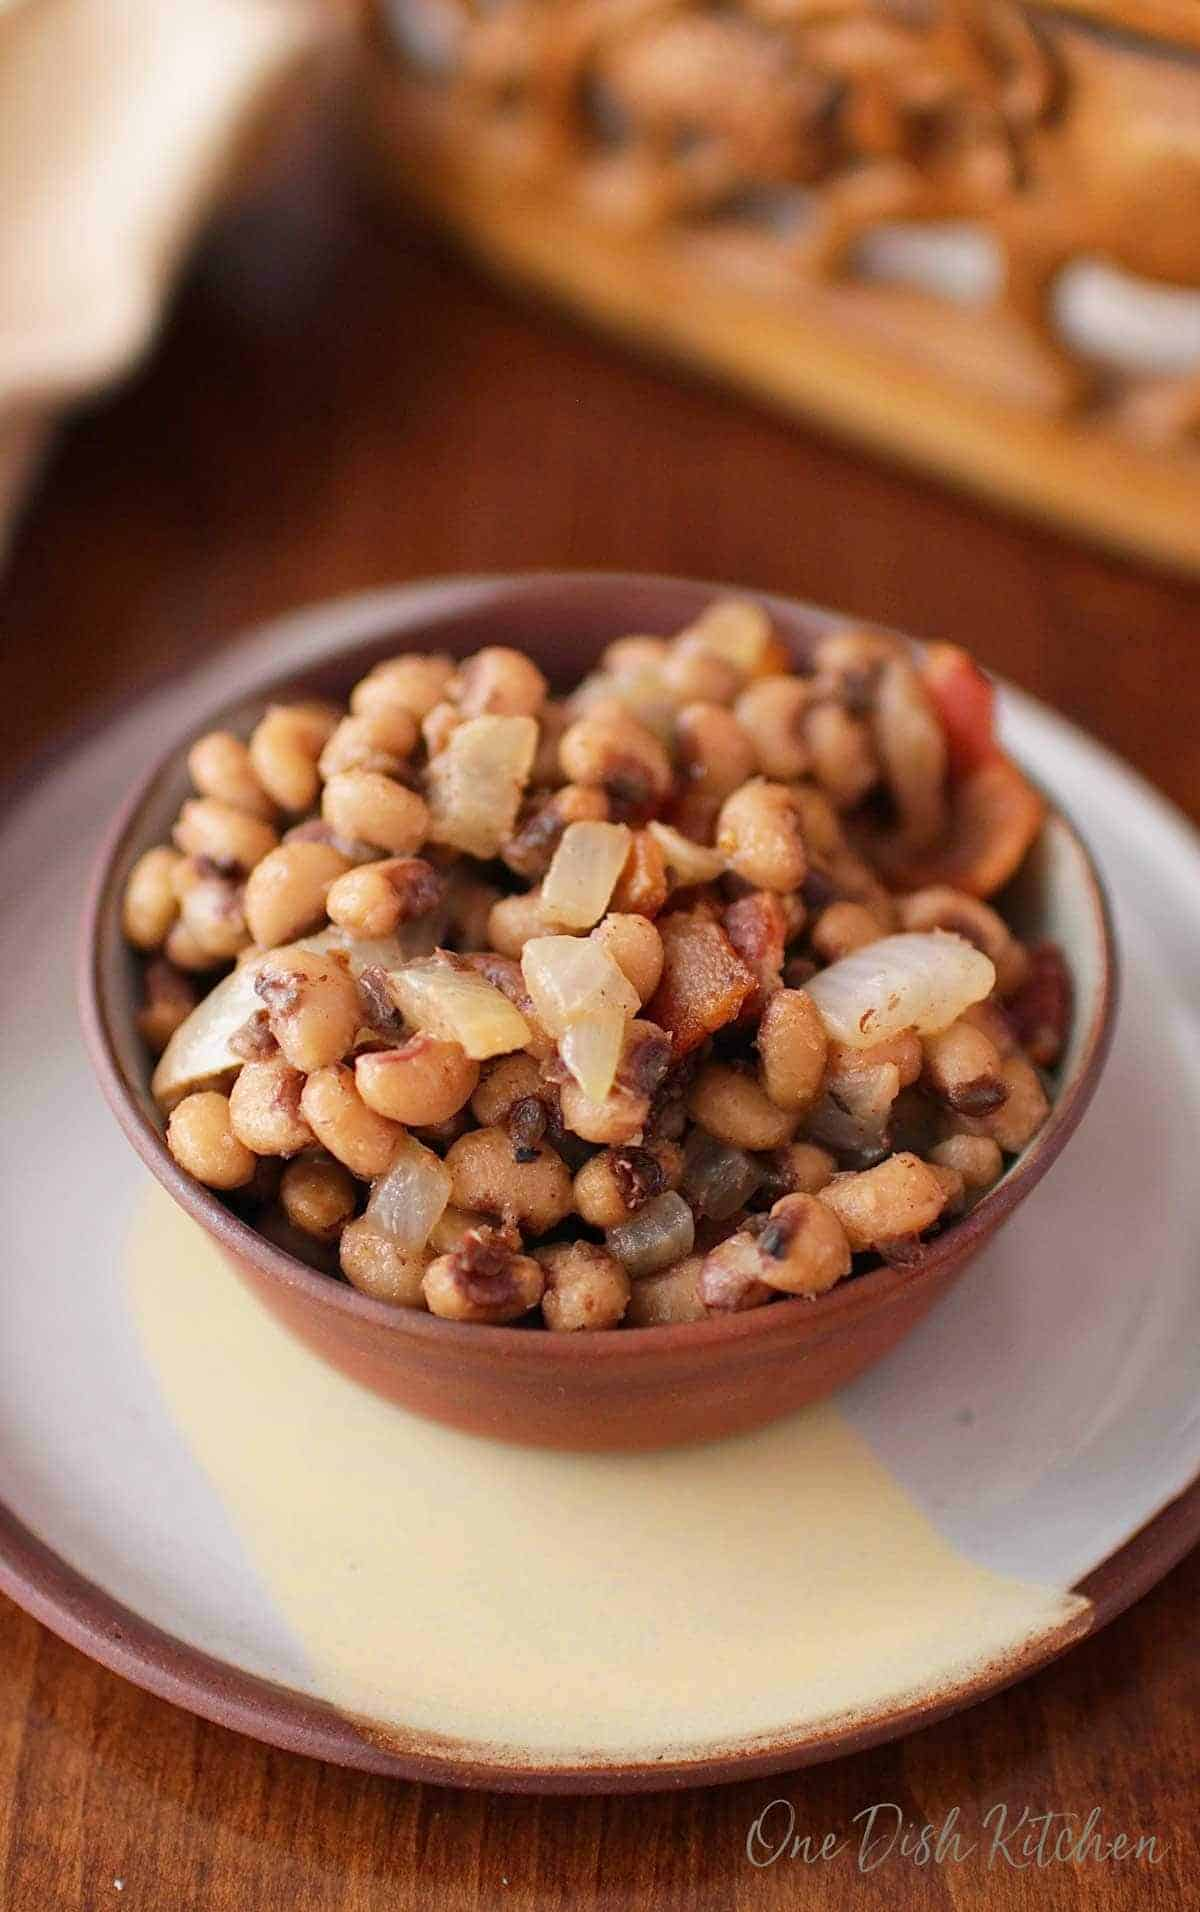 Black Eyed Peas with Bacon, Onions, and Garlic in a bowl